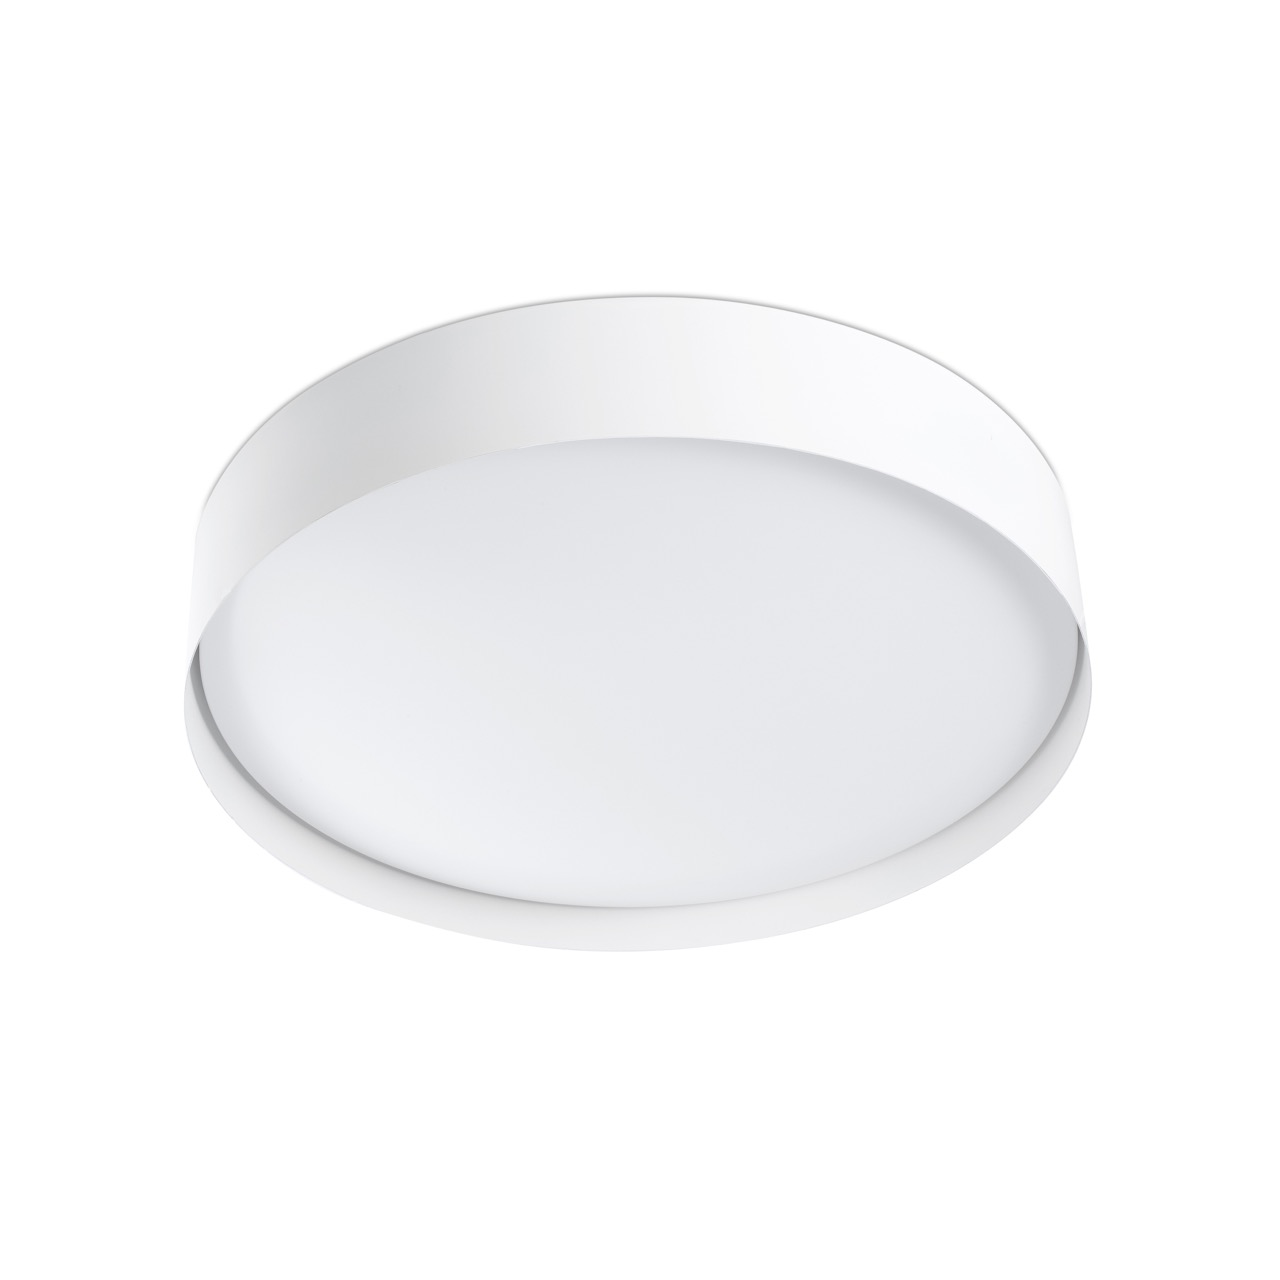 Focos led para baos aplique de pared led w cromo plata - Focos techo led ...